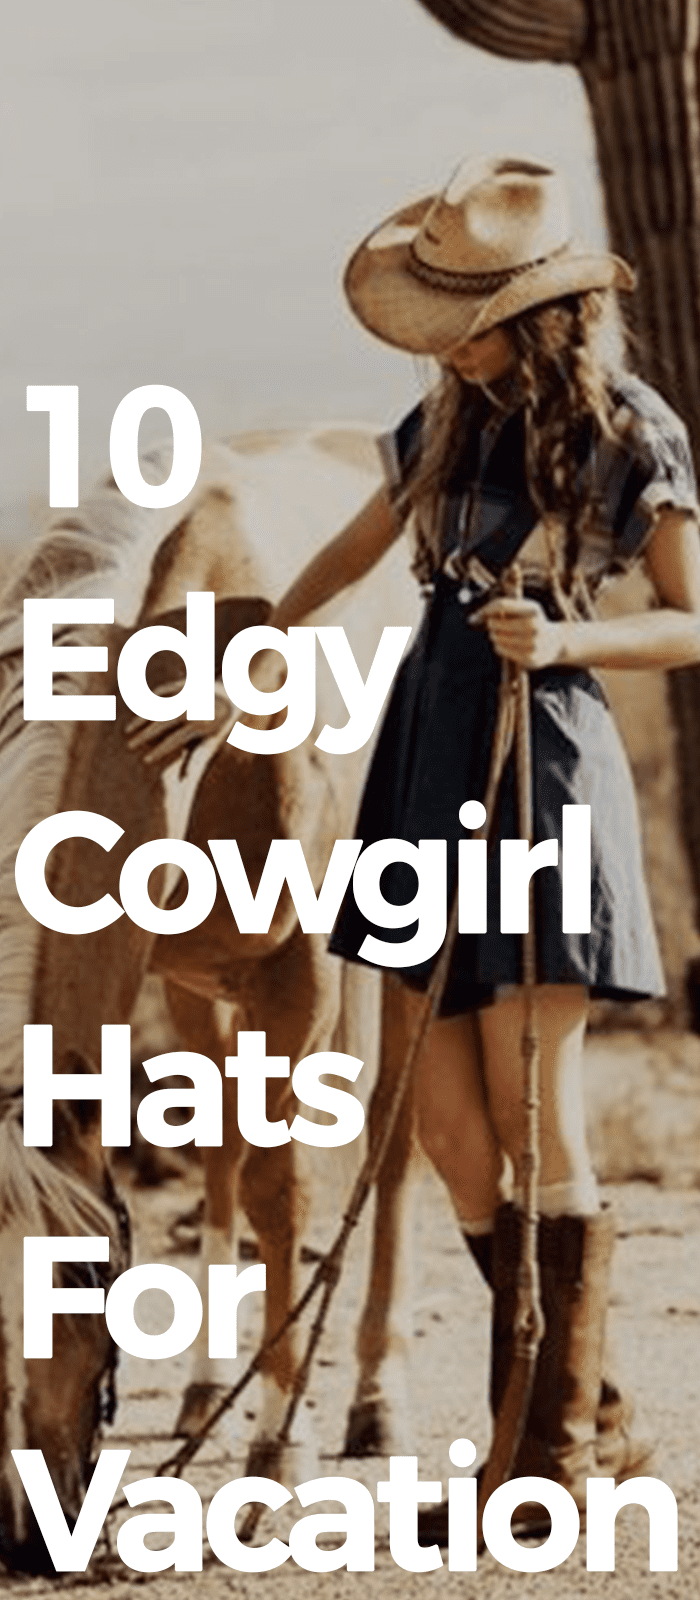 10 Edgy Cowgirl Hats For Vacation!